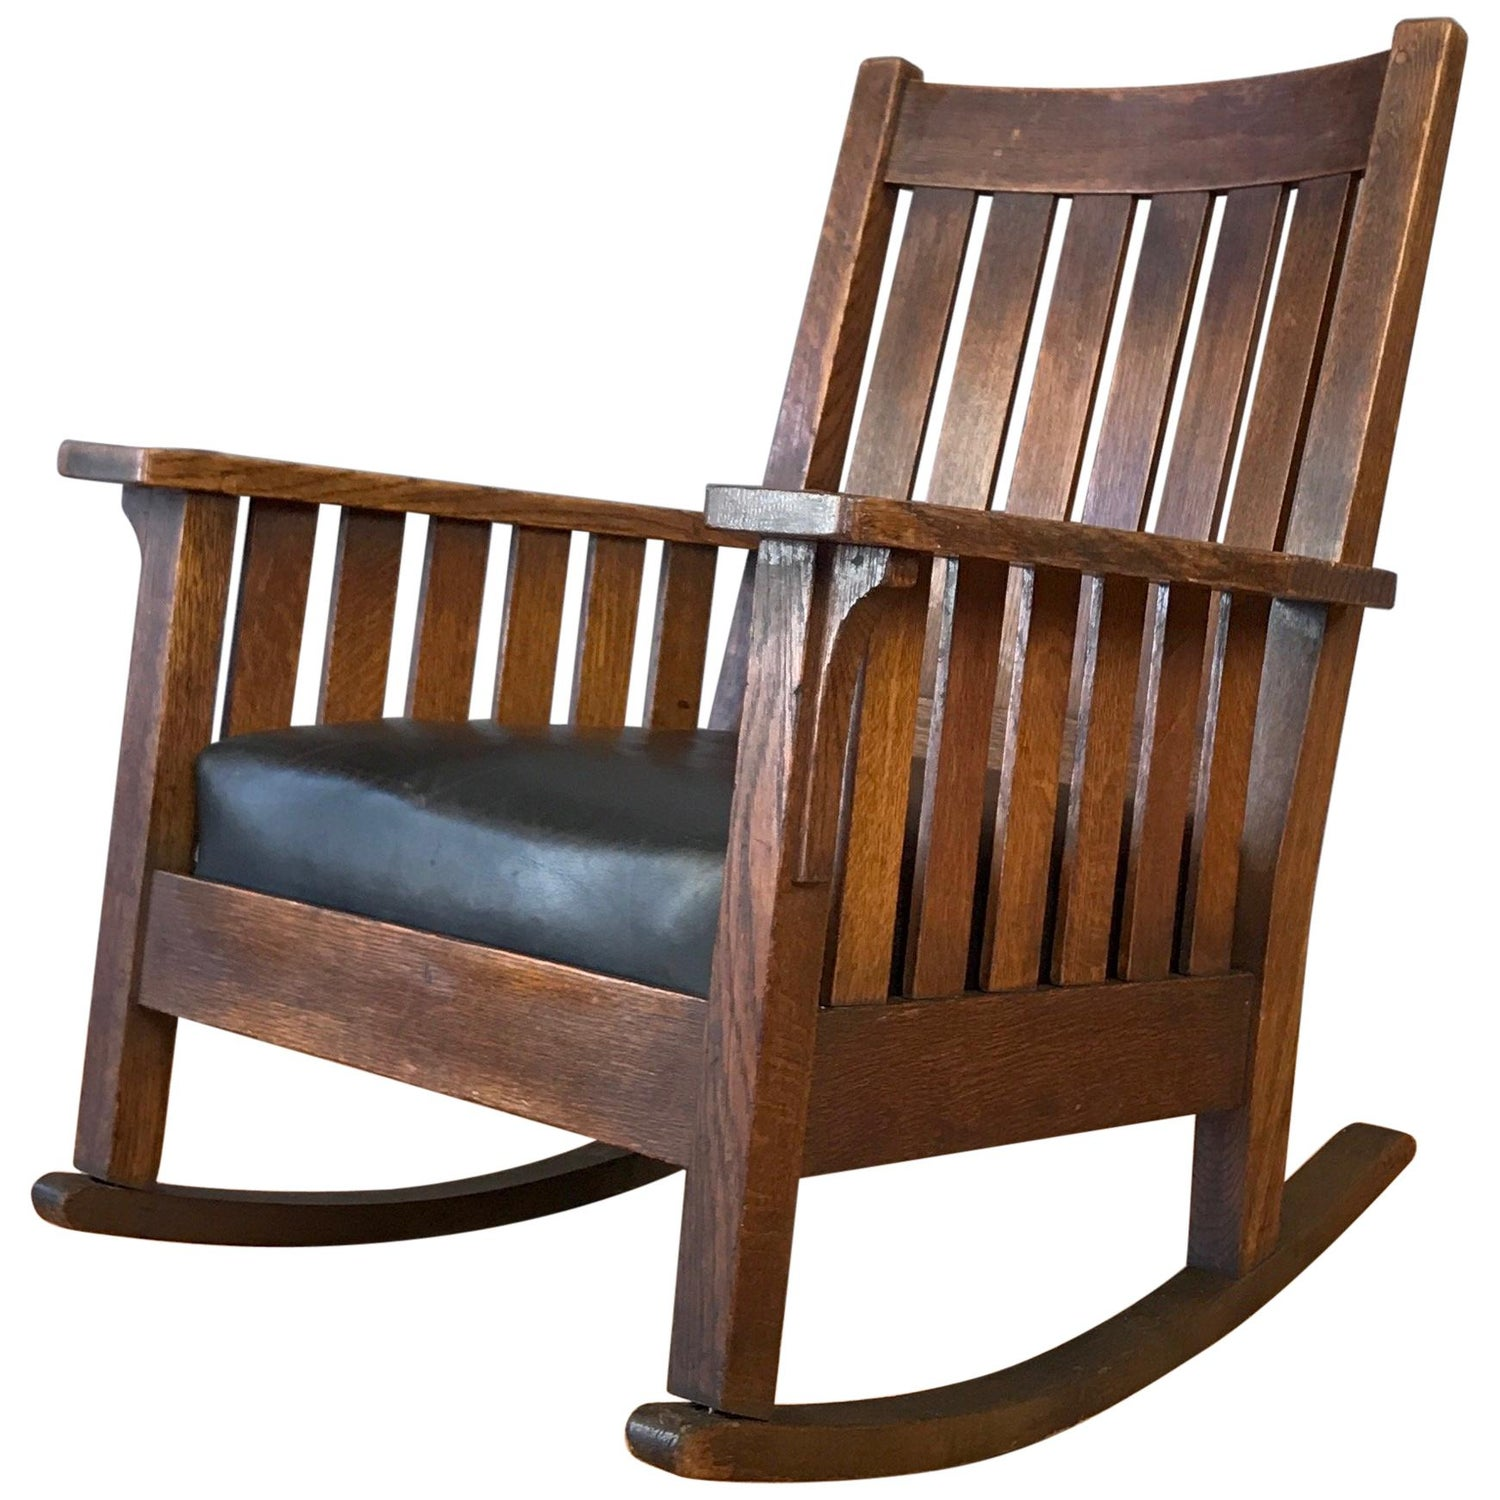 Surprising L And J G Stickley Arts And Crafts Oak And Leather Rocker Onthecornerstone Fun Painted Chair Ideas Images Onthecornerstoneorg